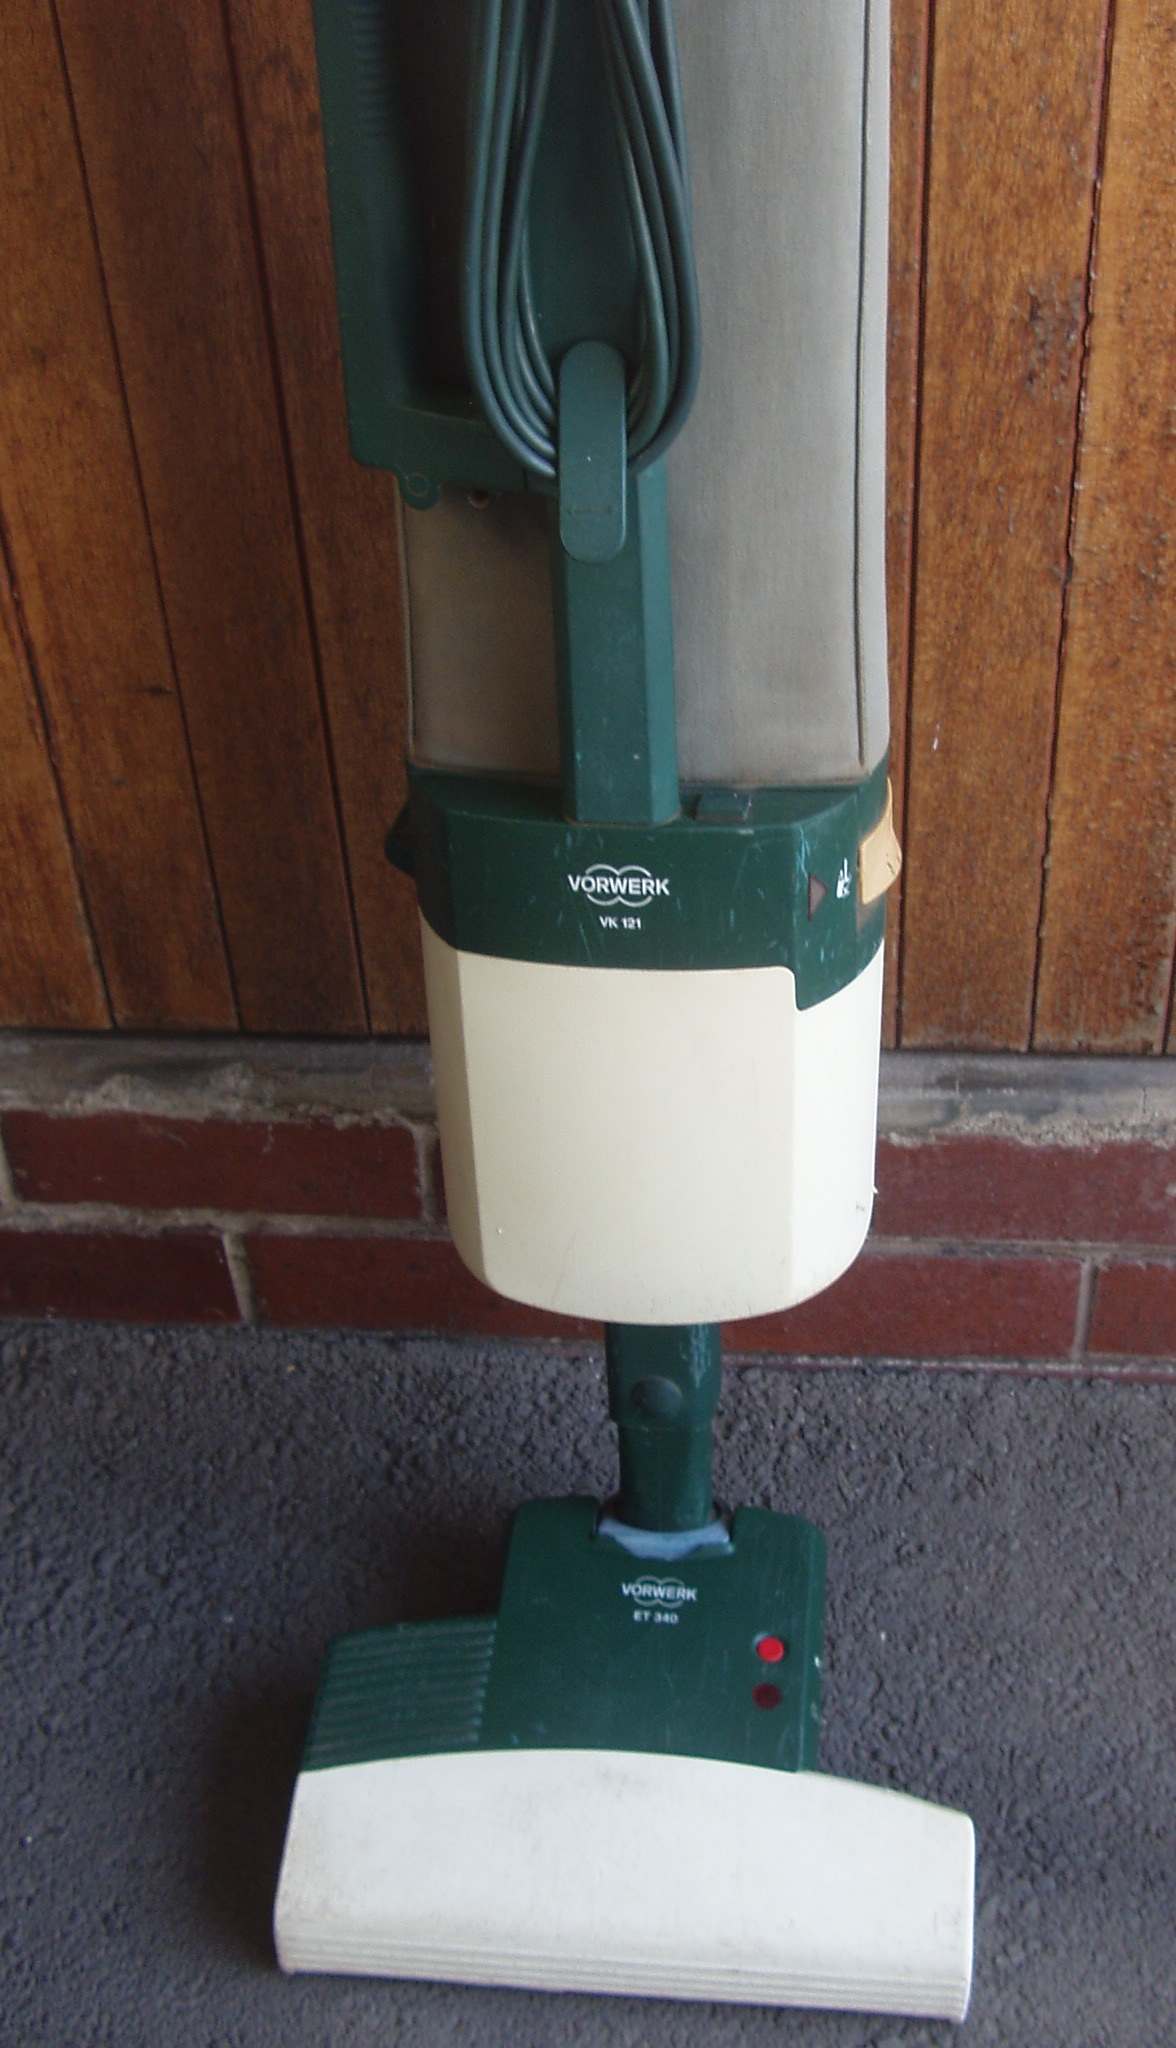 Vorwerk Upright Vacuum Cleaner  ET 340 - in excellent working order